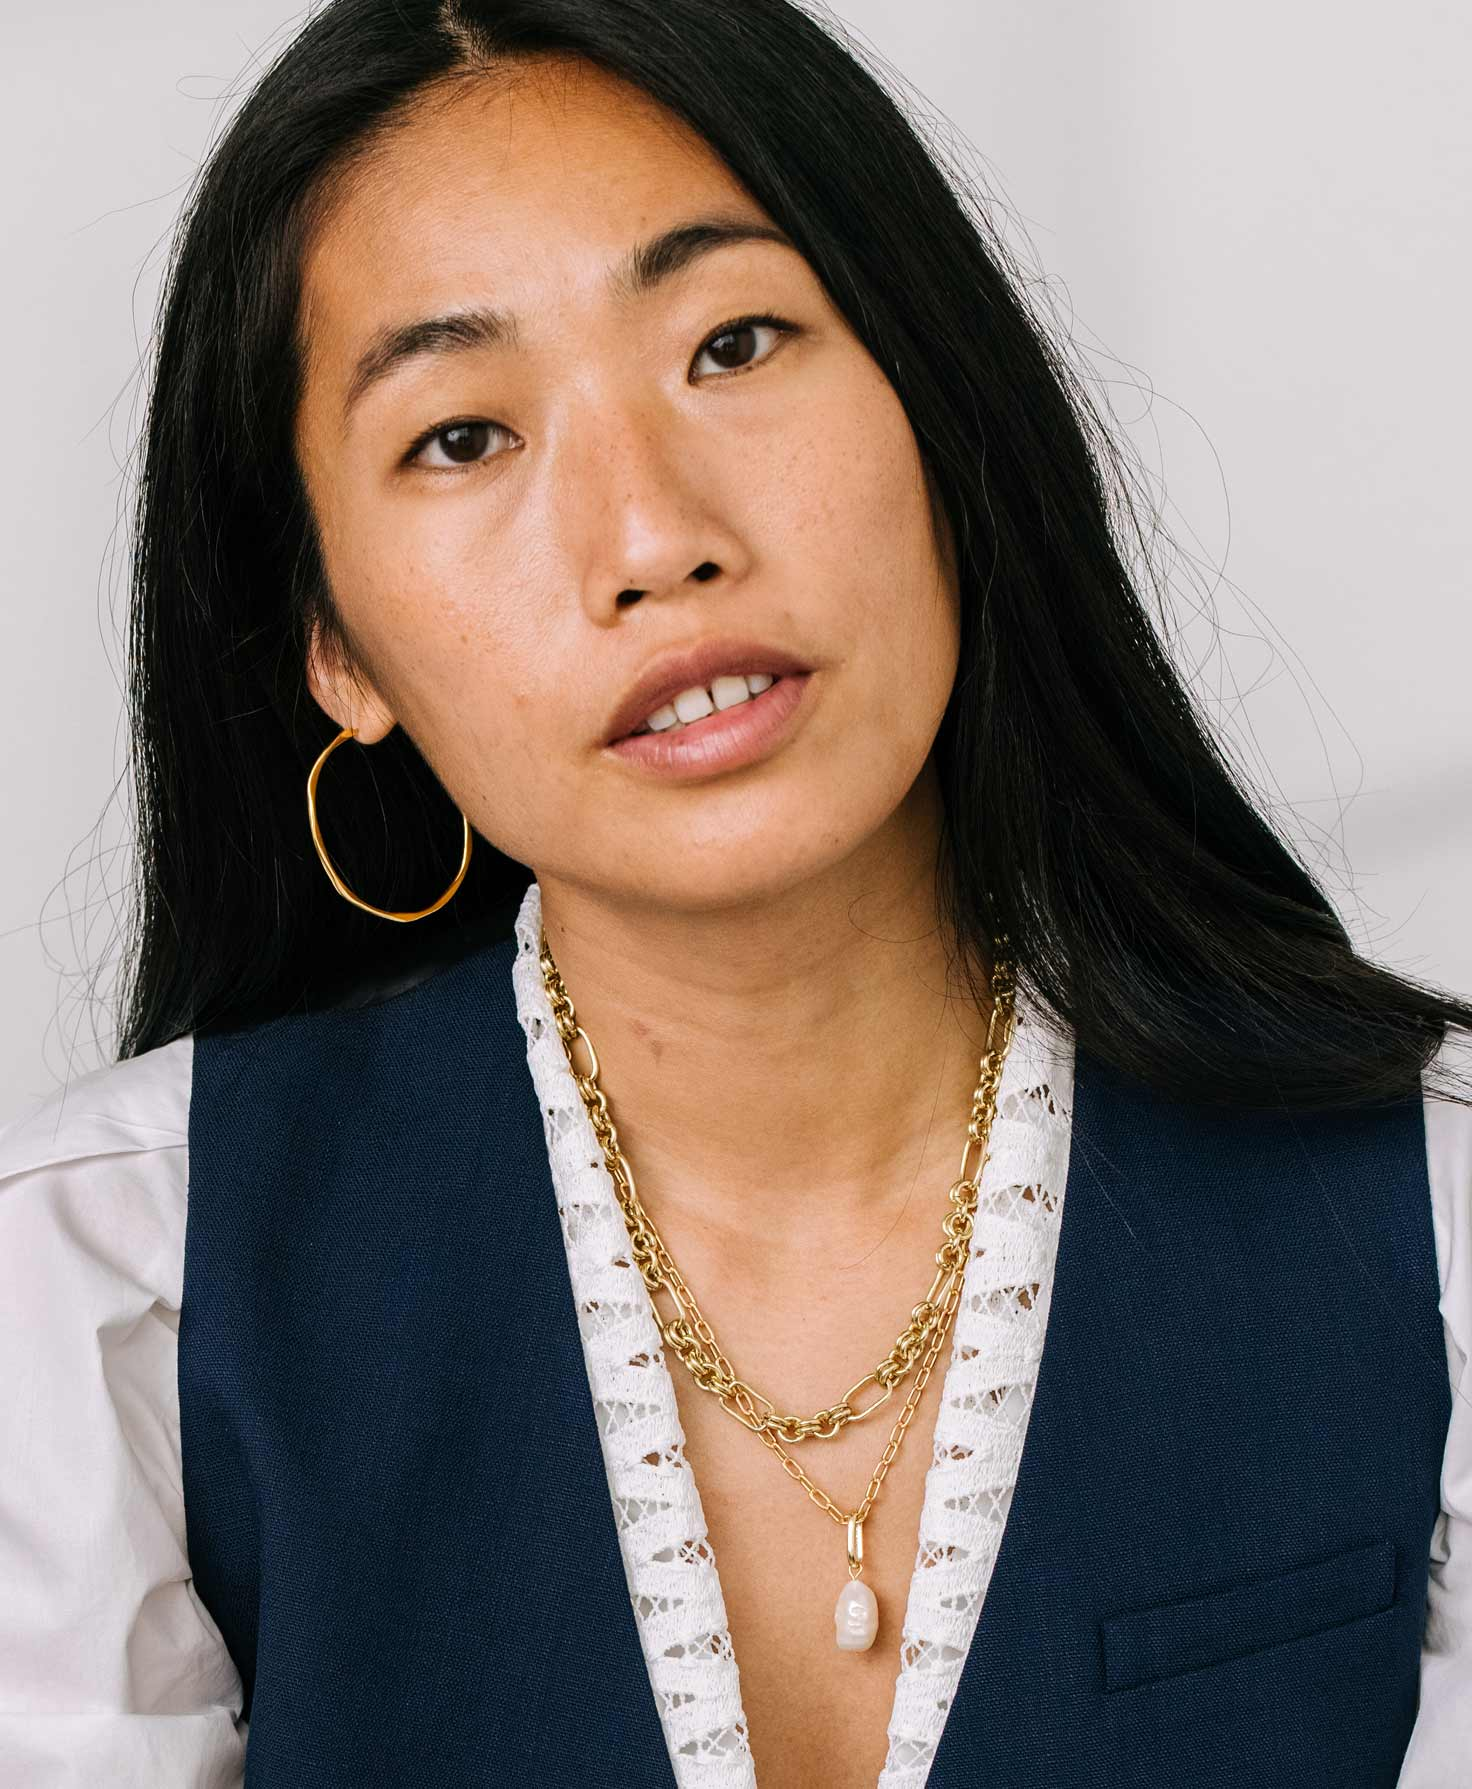 A model wears the Gold Rush Necklace layered with the Float Necklace, which has a similar gold chain with elongated links. She finishes her look with the Signal Hoops, which have the same shiny gold finish as the necklaces.